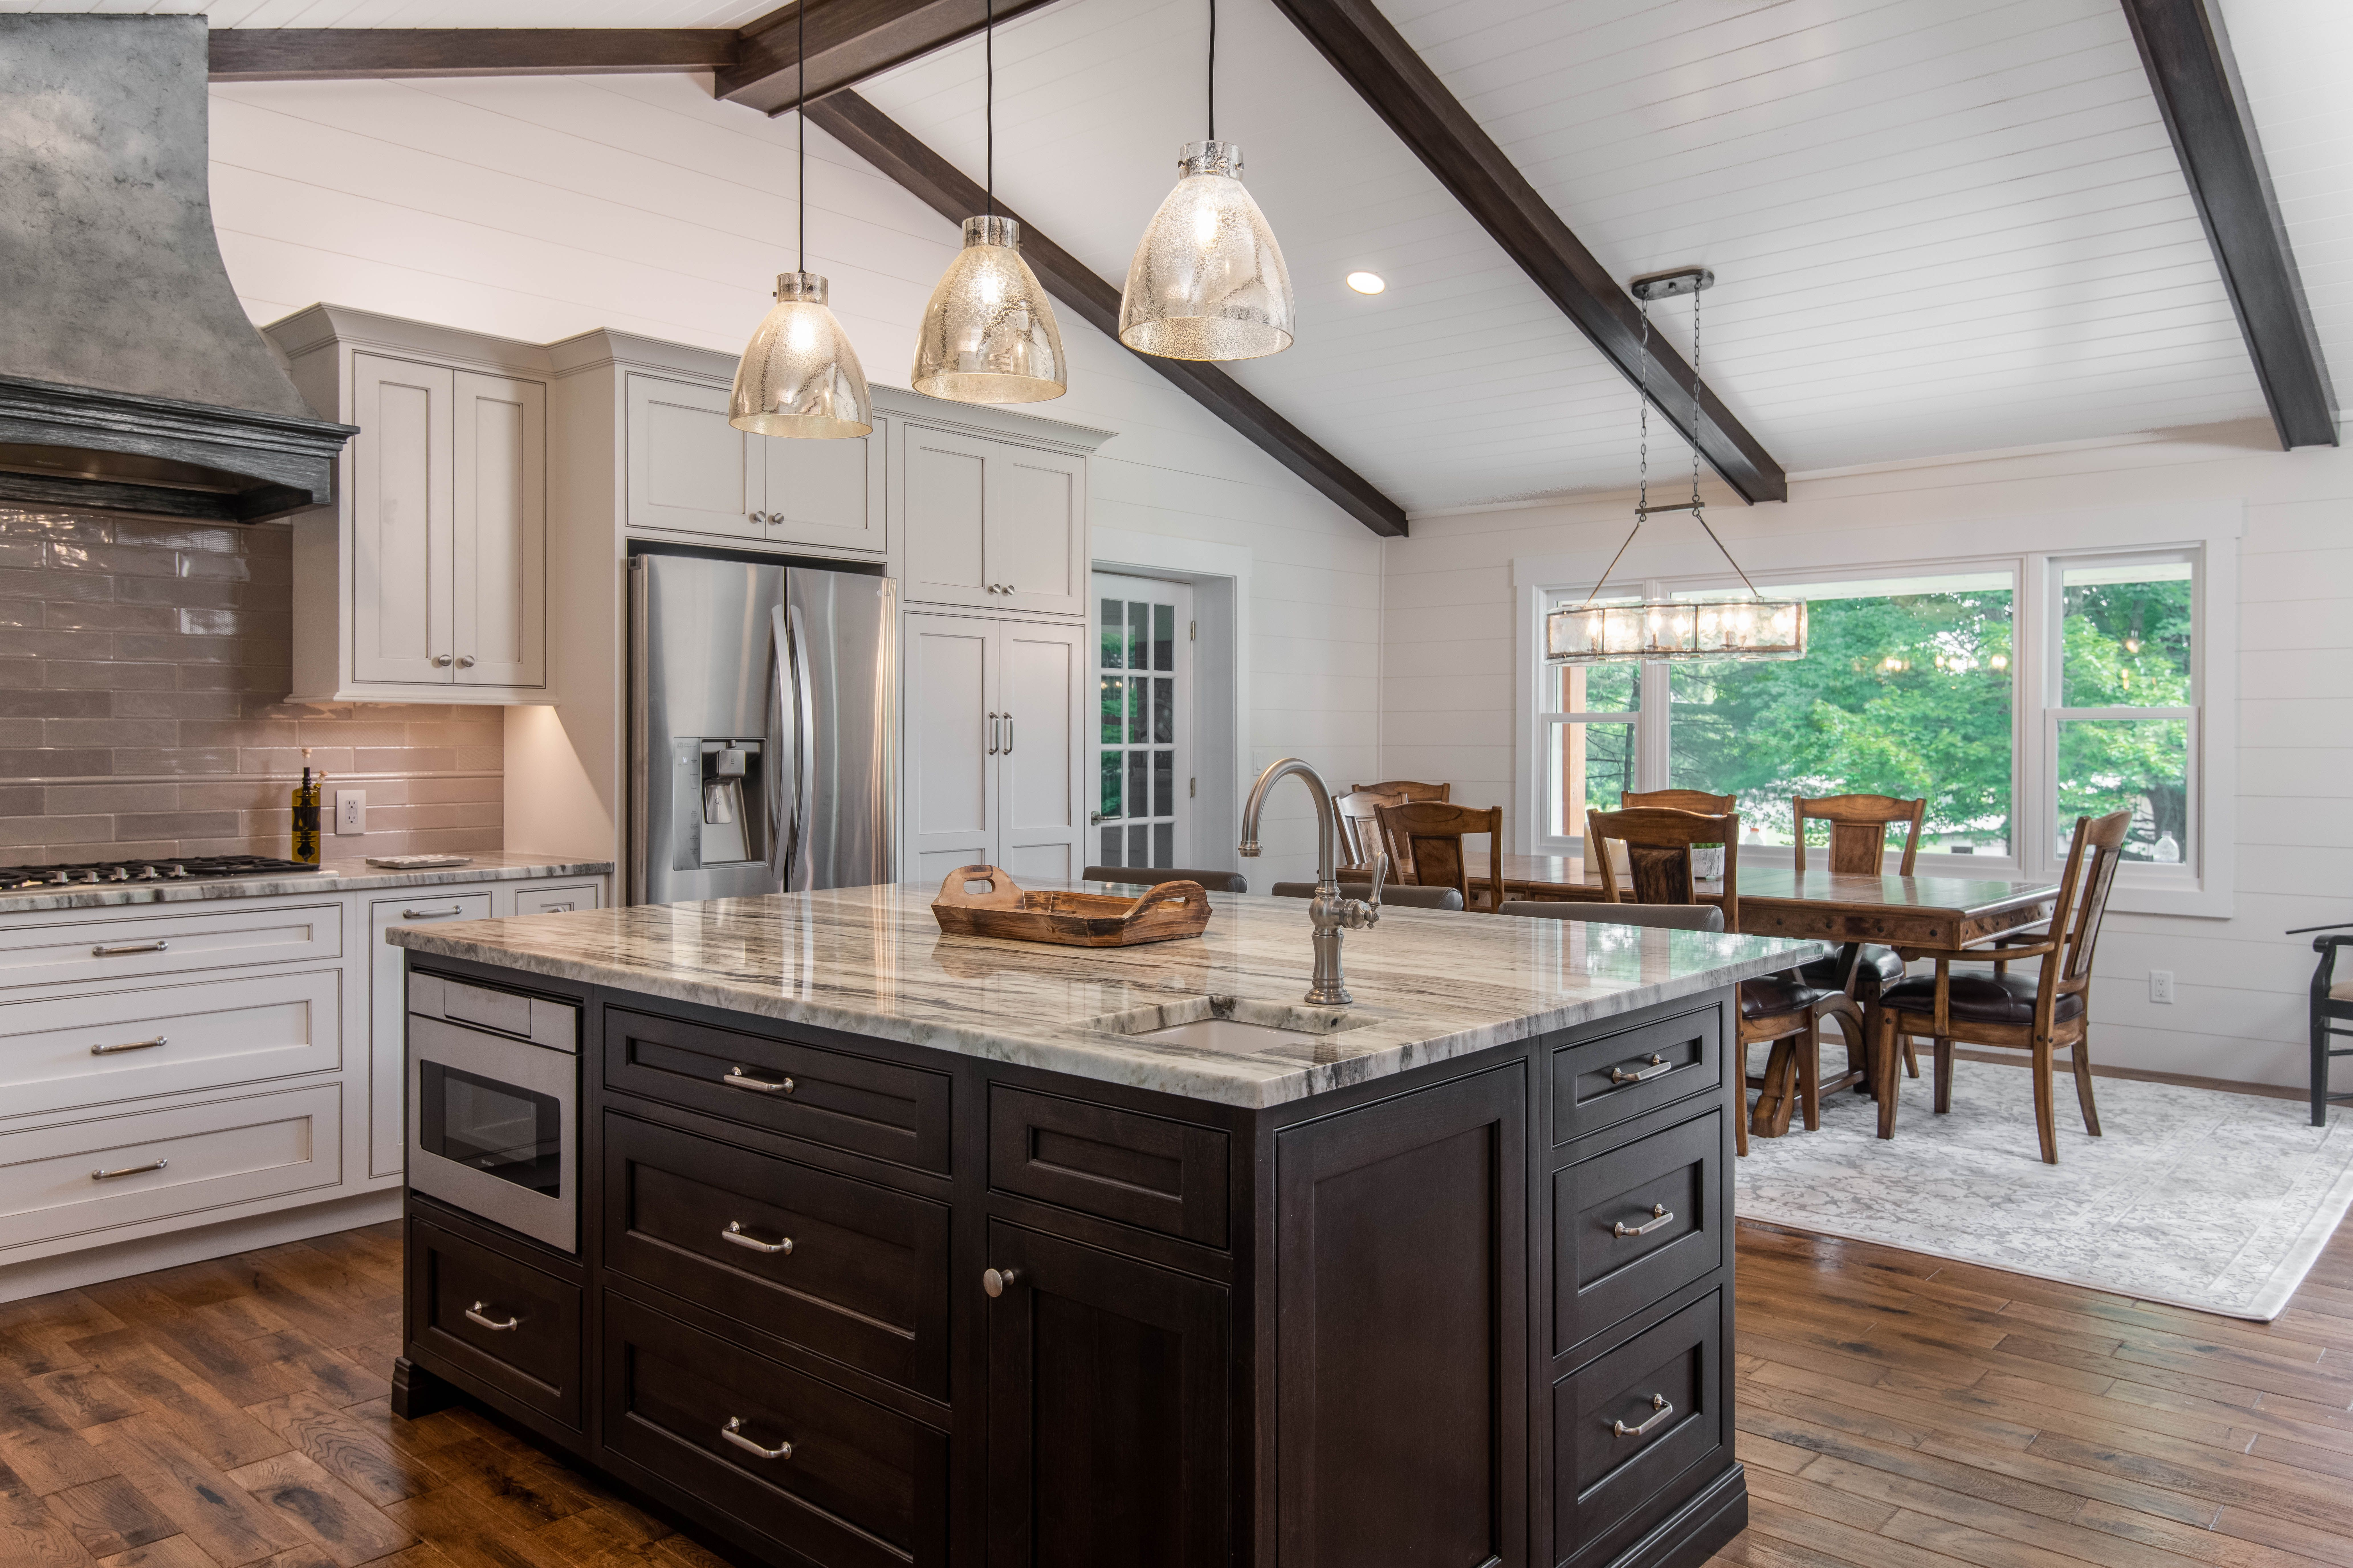 Incroyable Open Kitchen And Dining After A Kitchen Remodel By Judd Builders, Asheville,  NC.